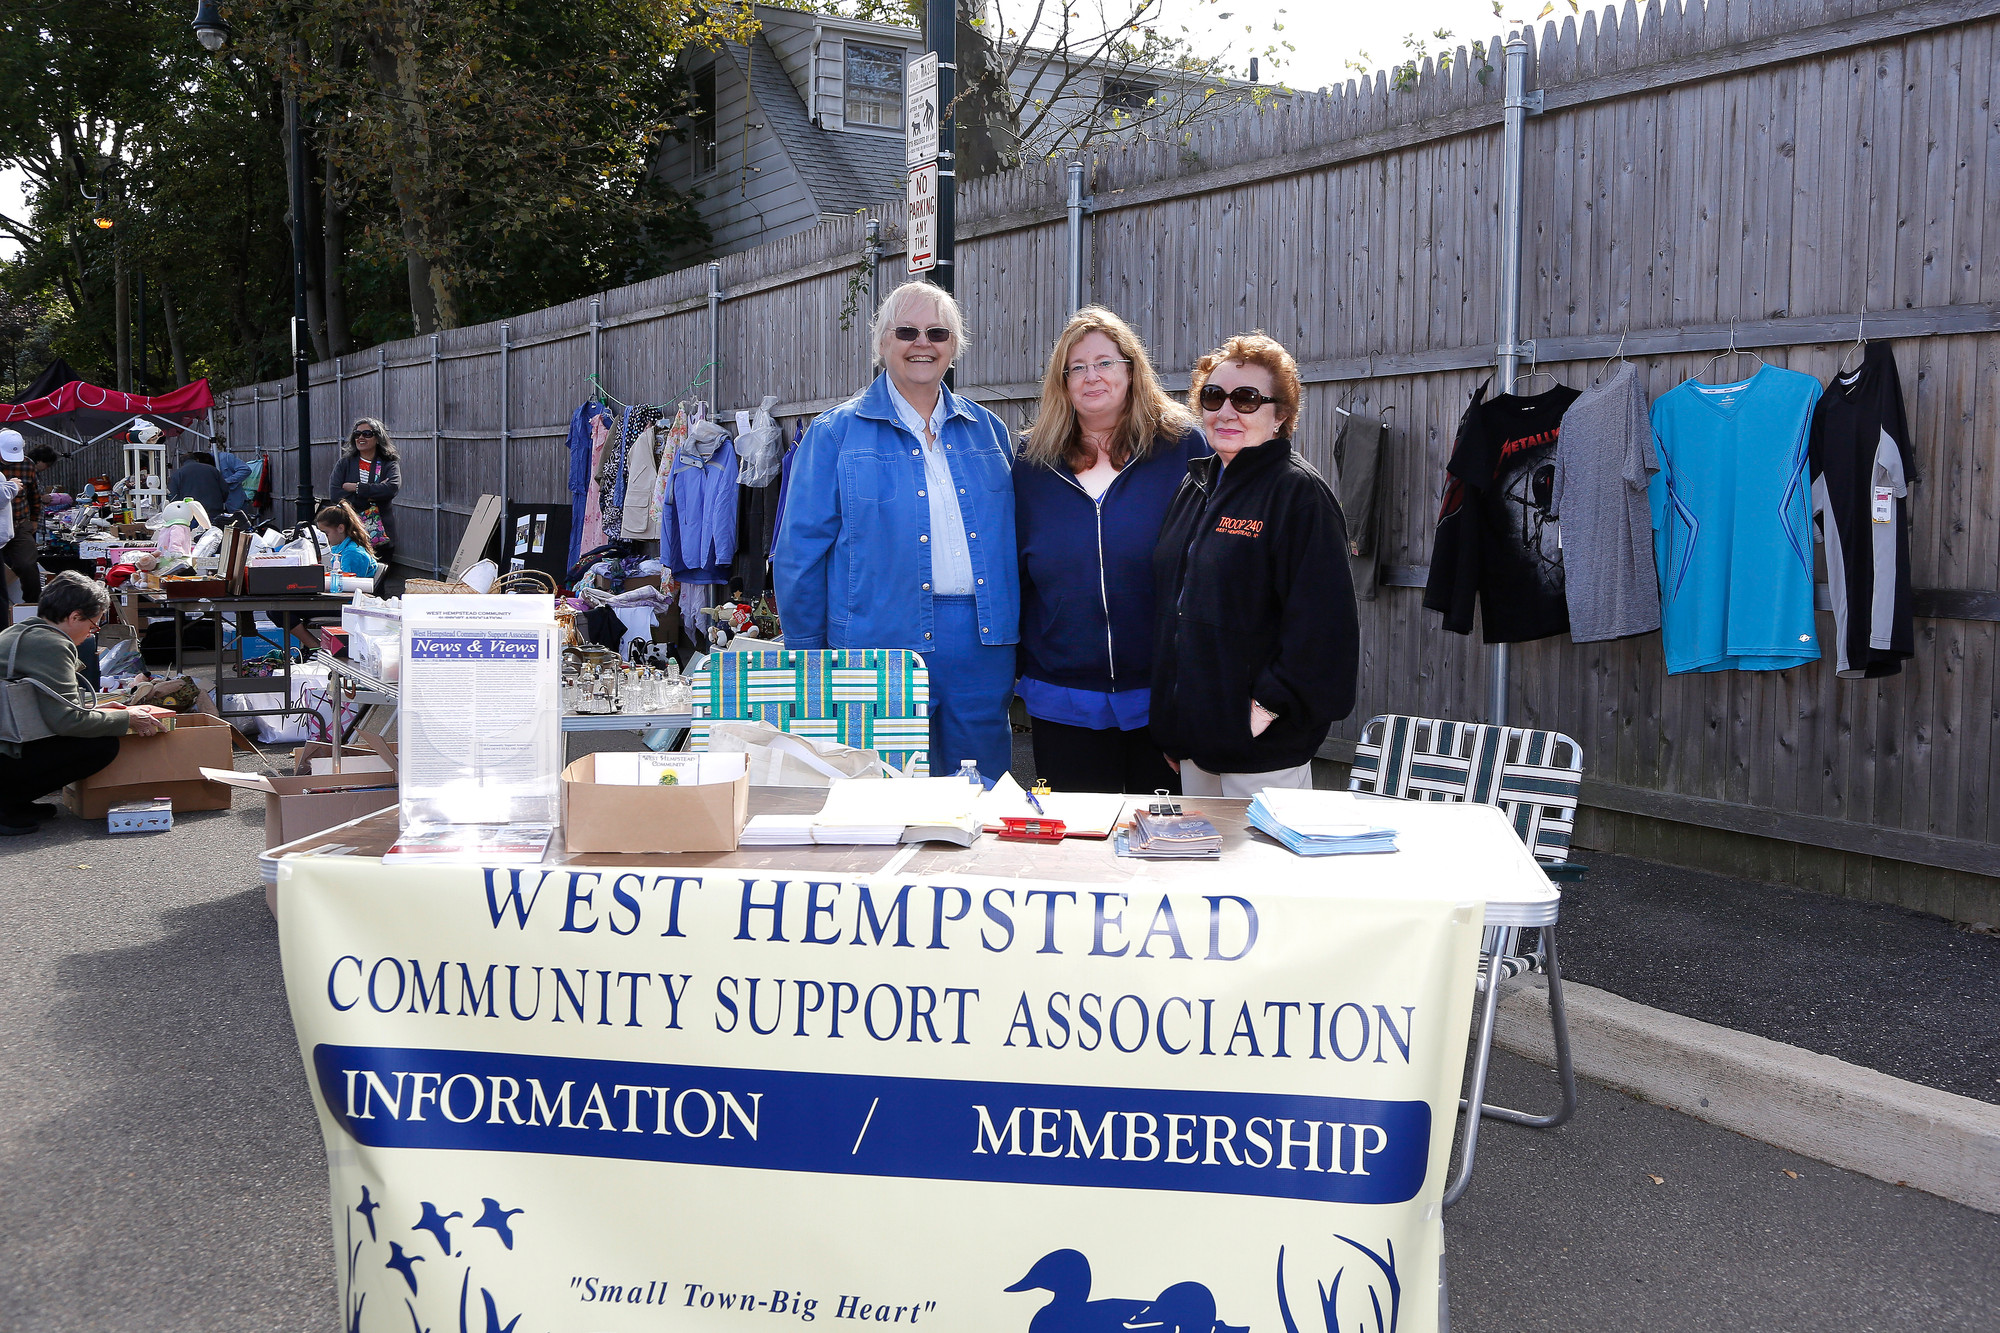 West Hempstead Community Support Association